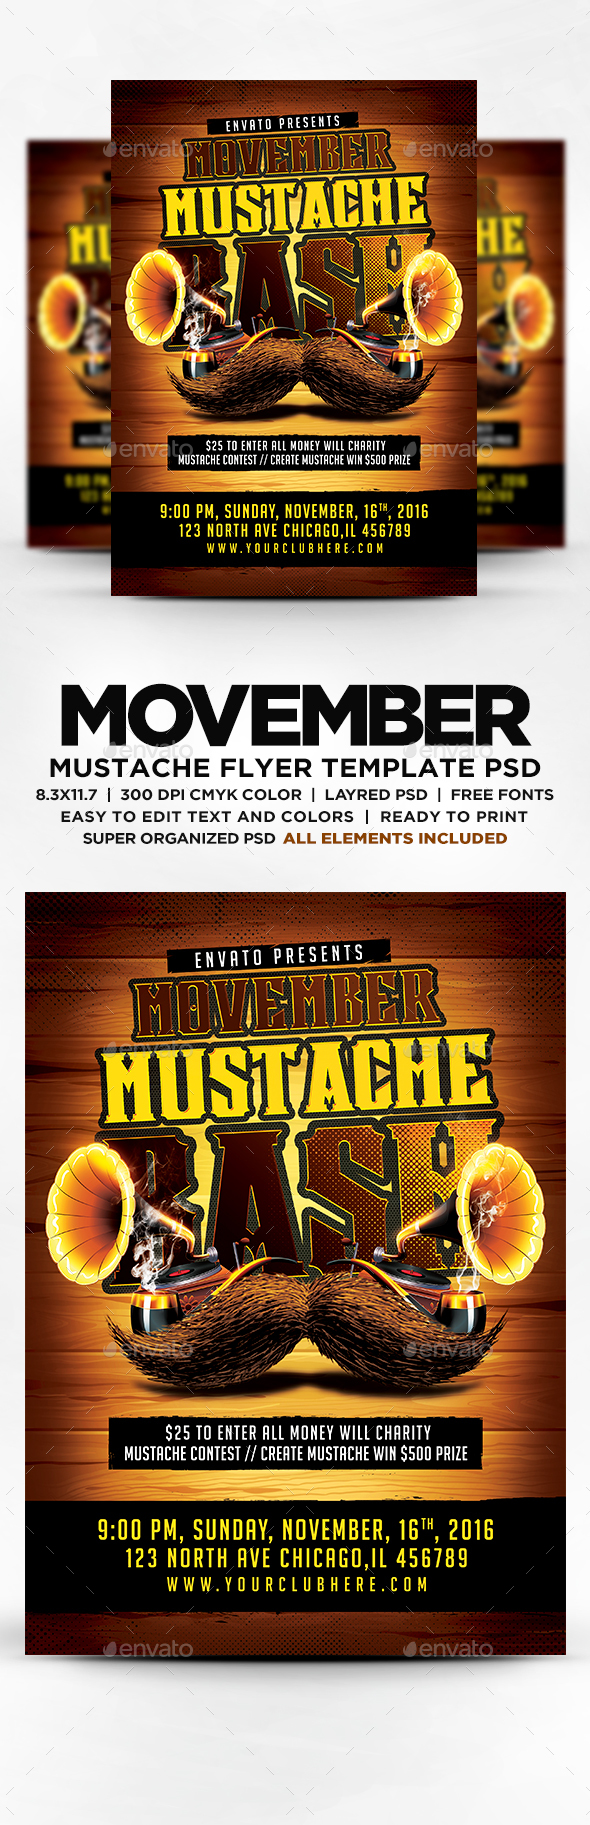 Buy Movember Mustache Bash Flyer By DESIGNBLEND On GraphicRiver Features This Item Print Dimensions Bleed Resolution CMYK Color All Text Is Editable